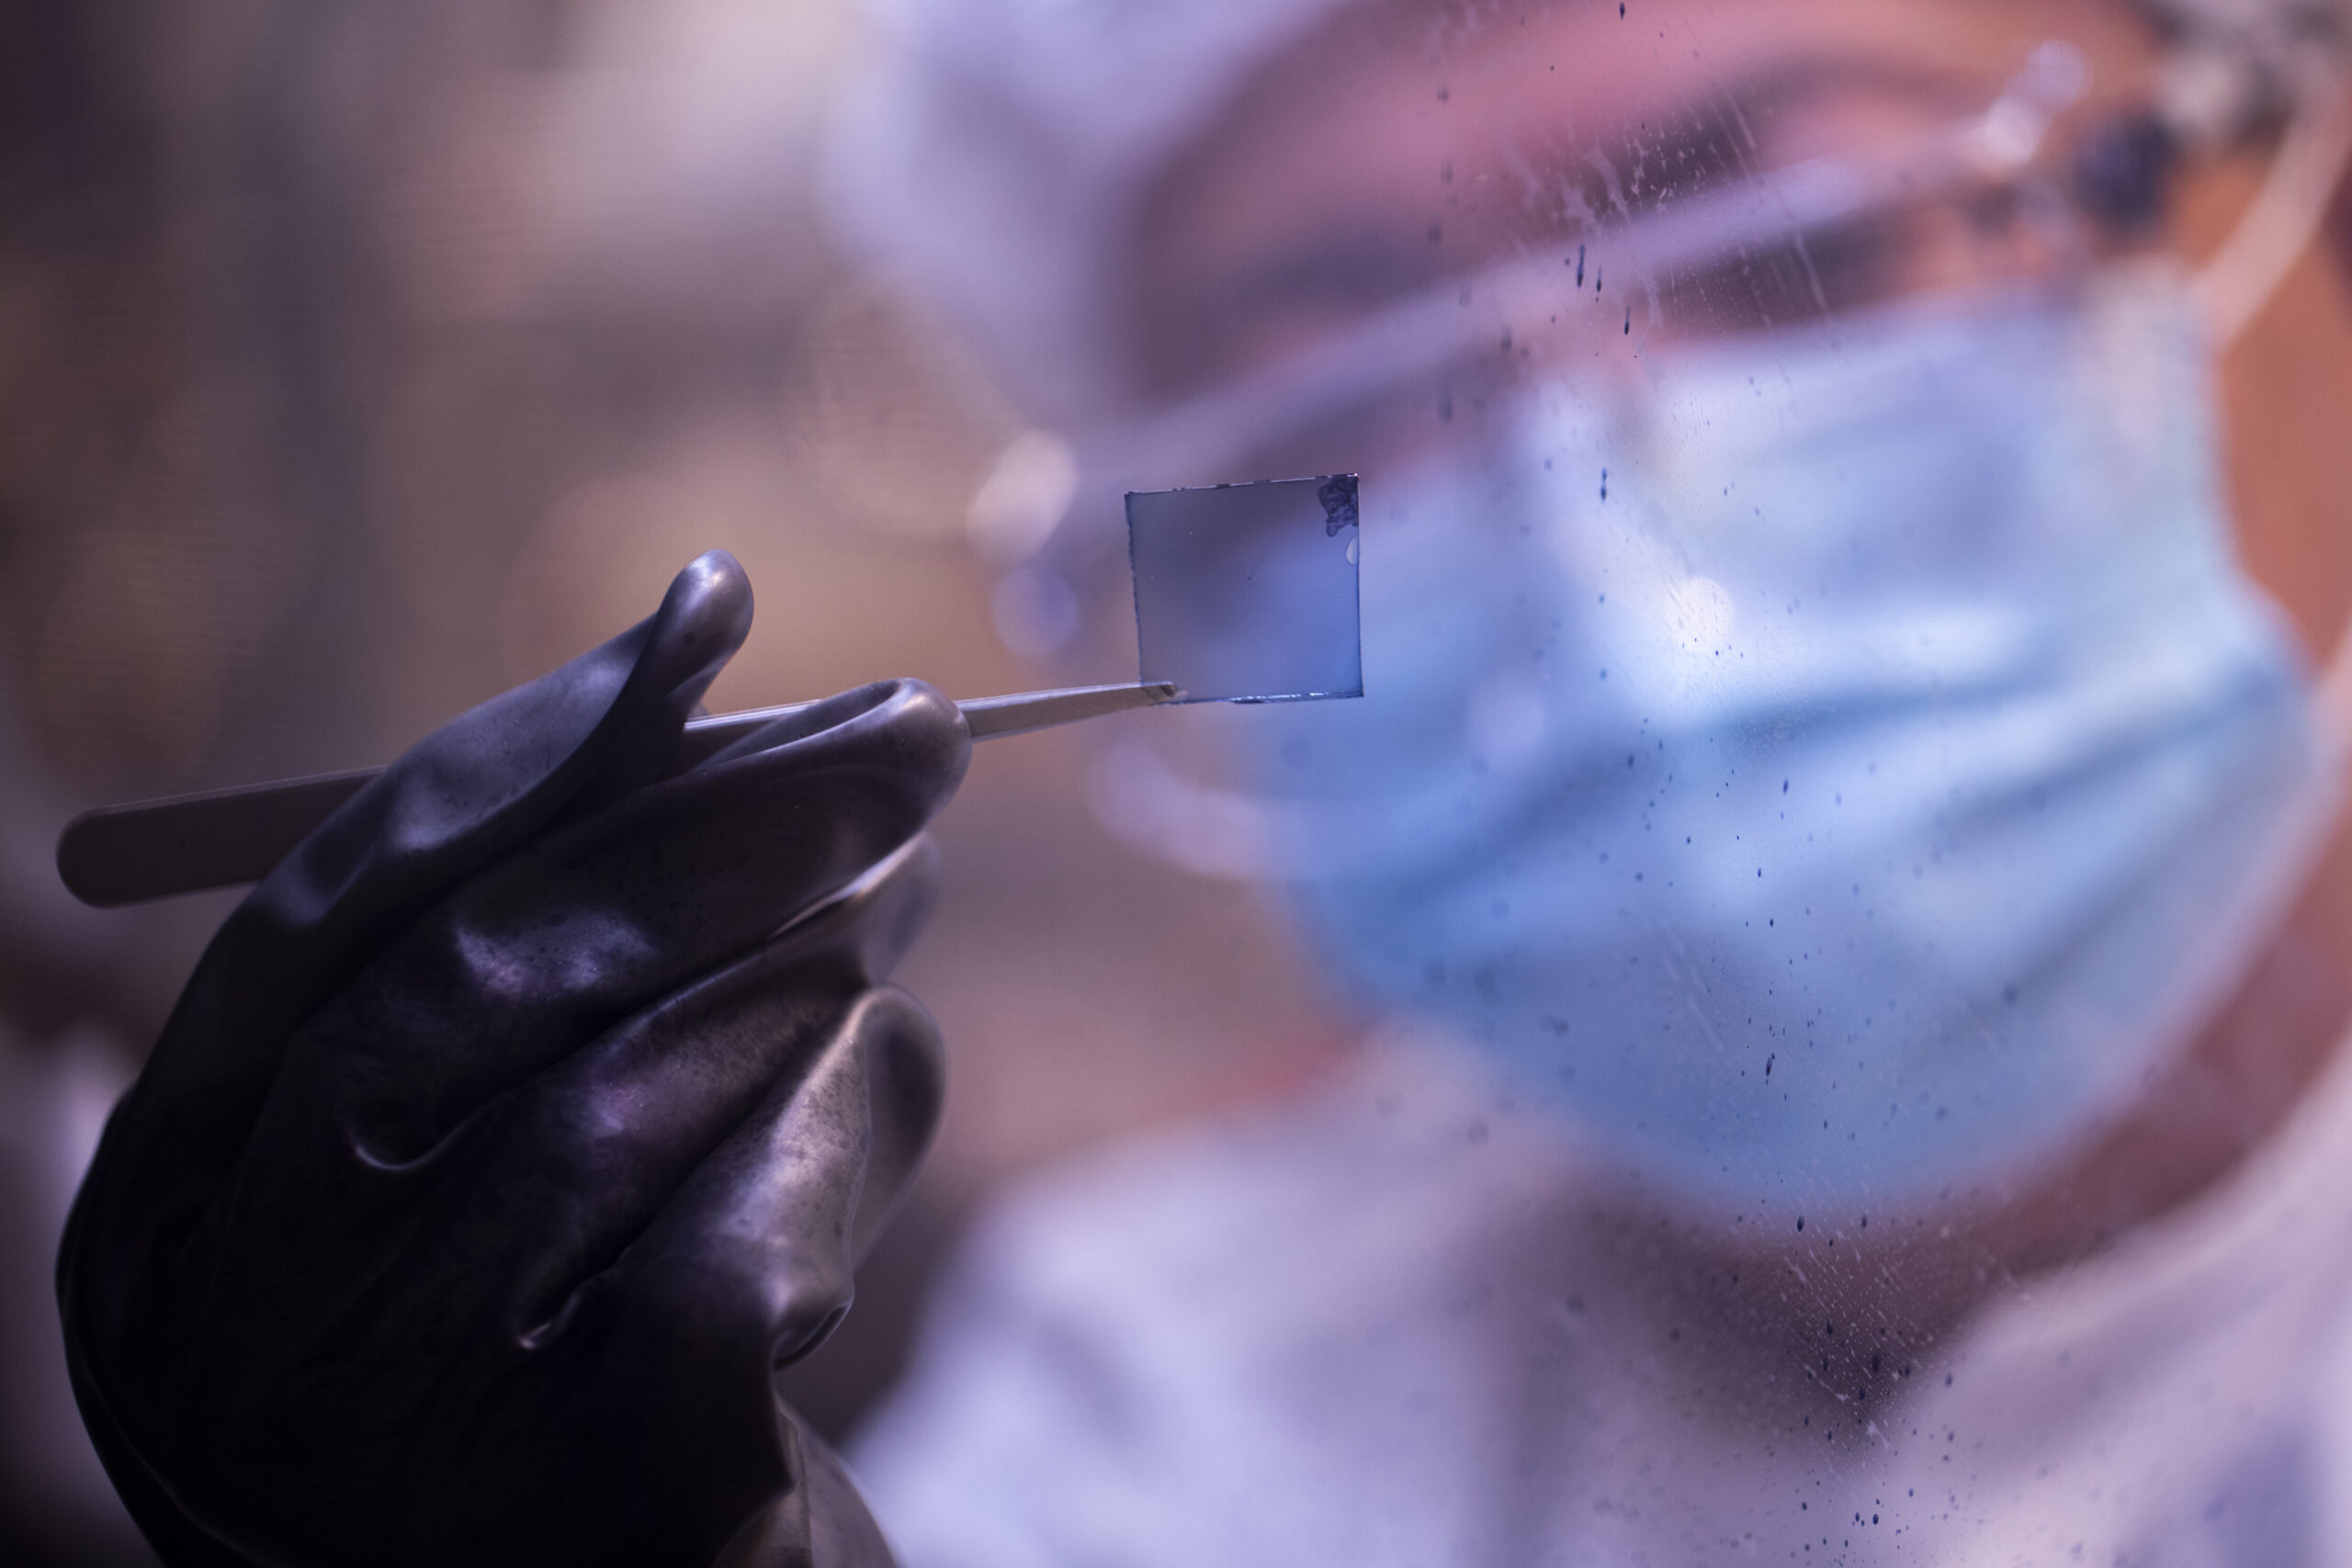 A researcher holds a square of the new transparent solar cell material with tweezers